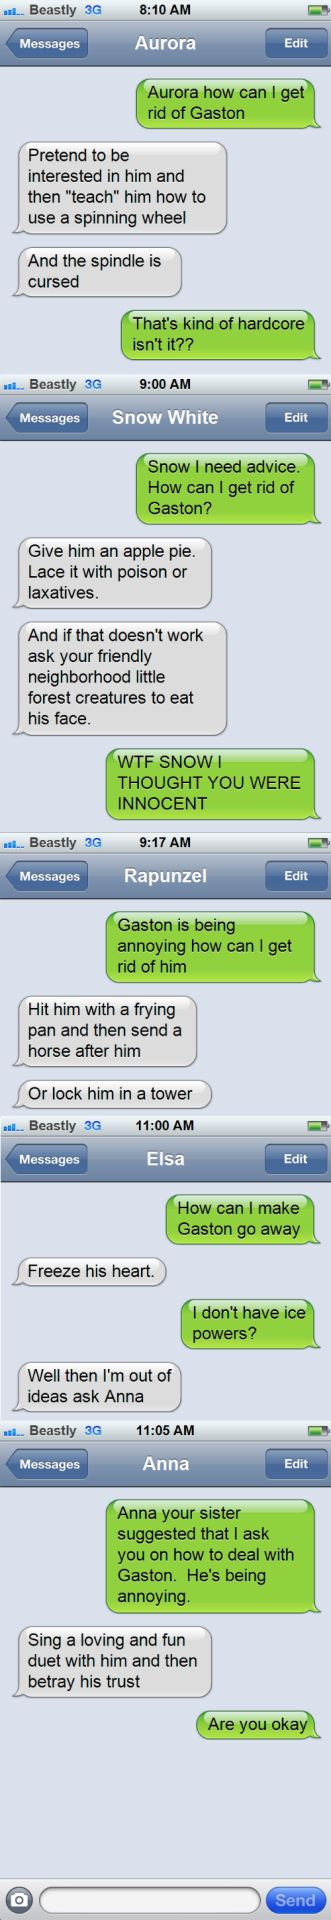 Belle needs advice but the other princesses are too harsh. (I don't think they're too harsh, considering he's Gaston)